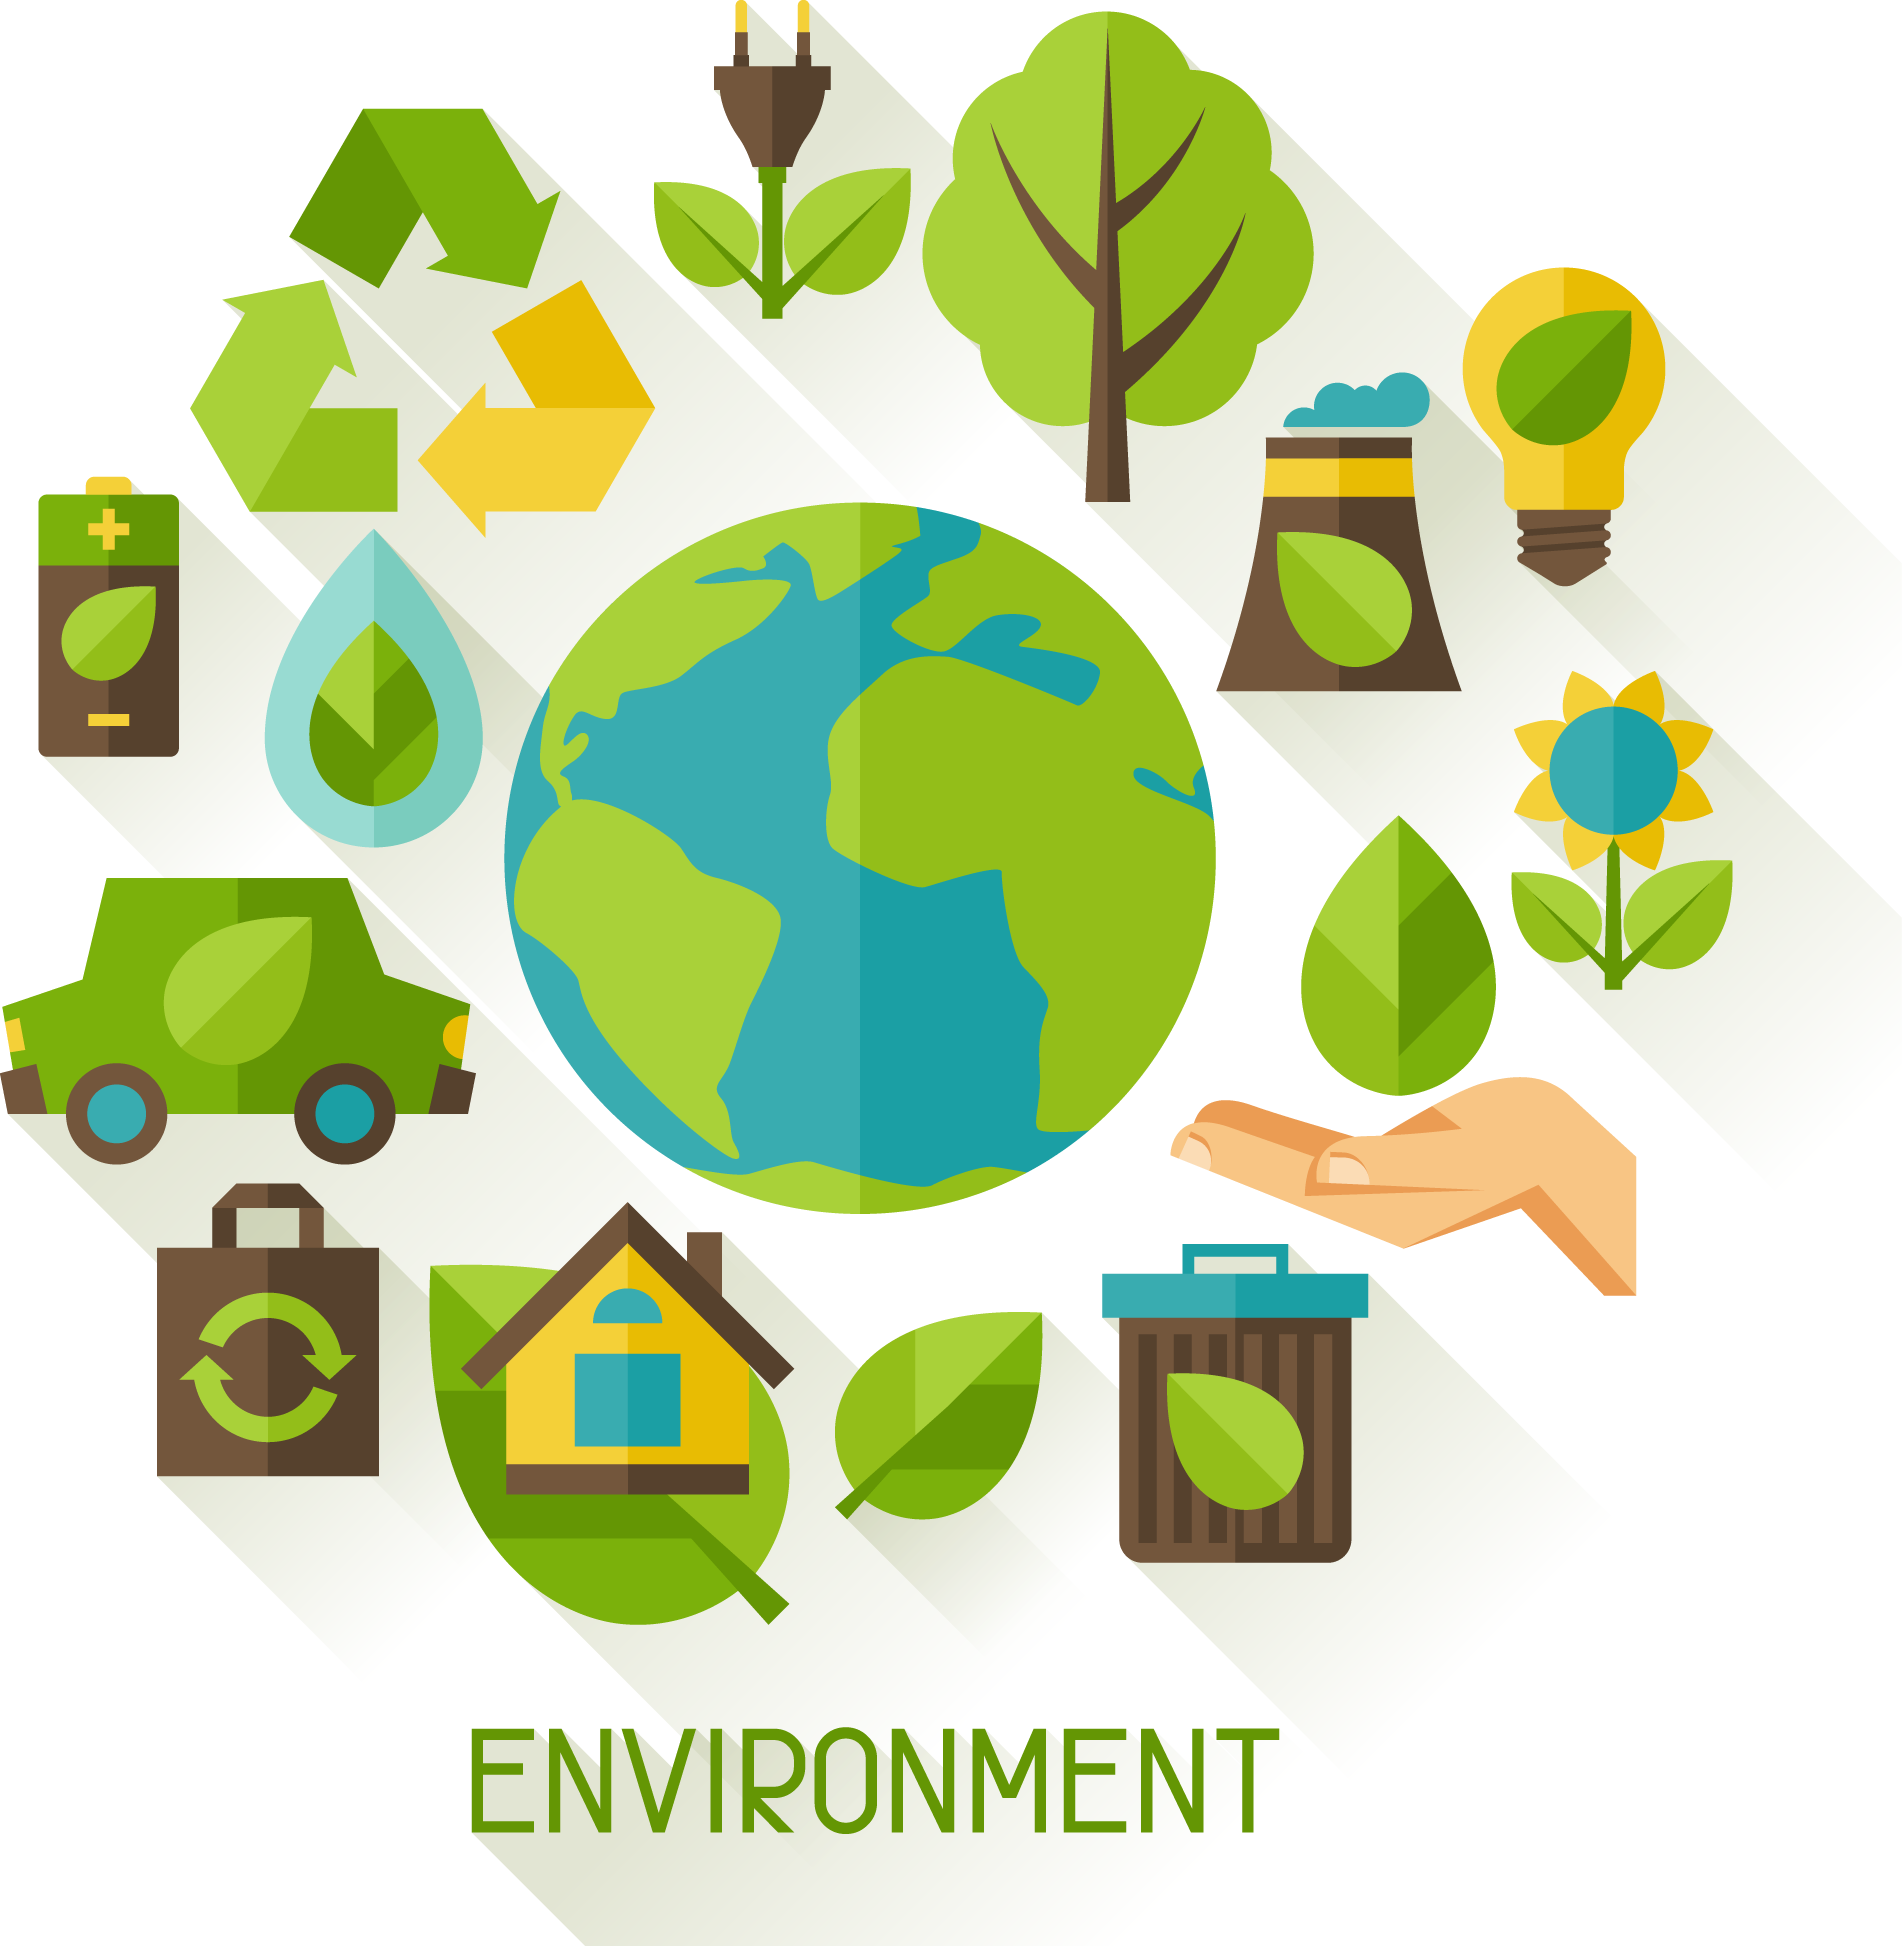 Environment vector infographic. Pollution ecology illustration calls